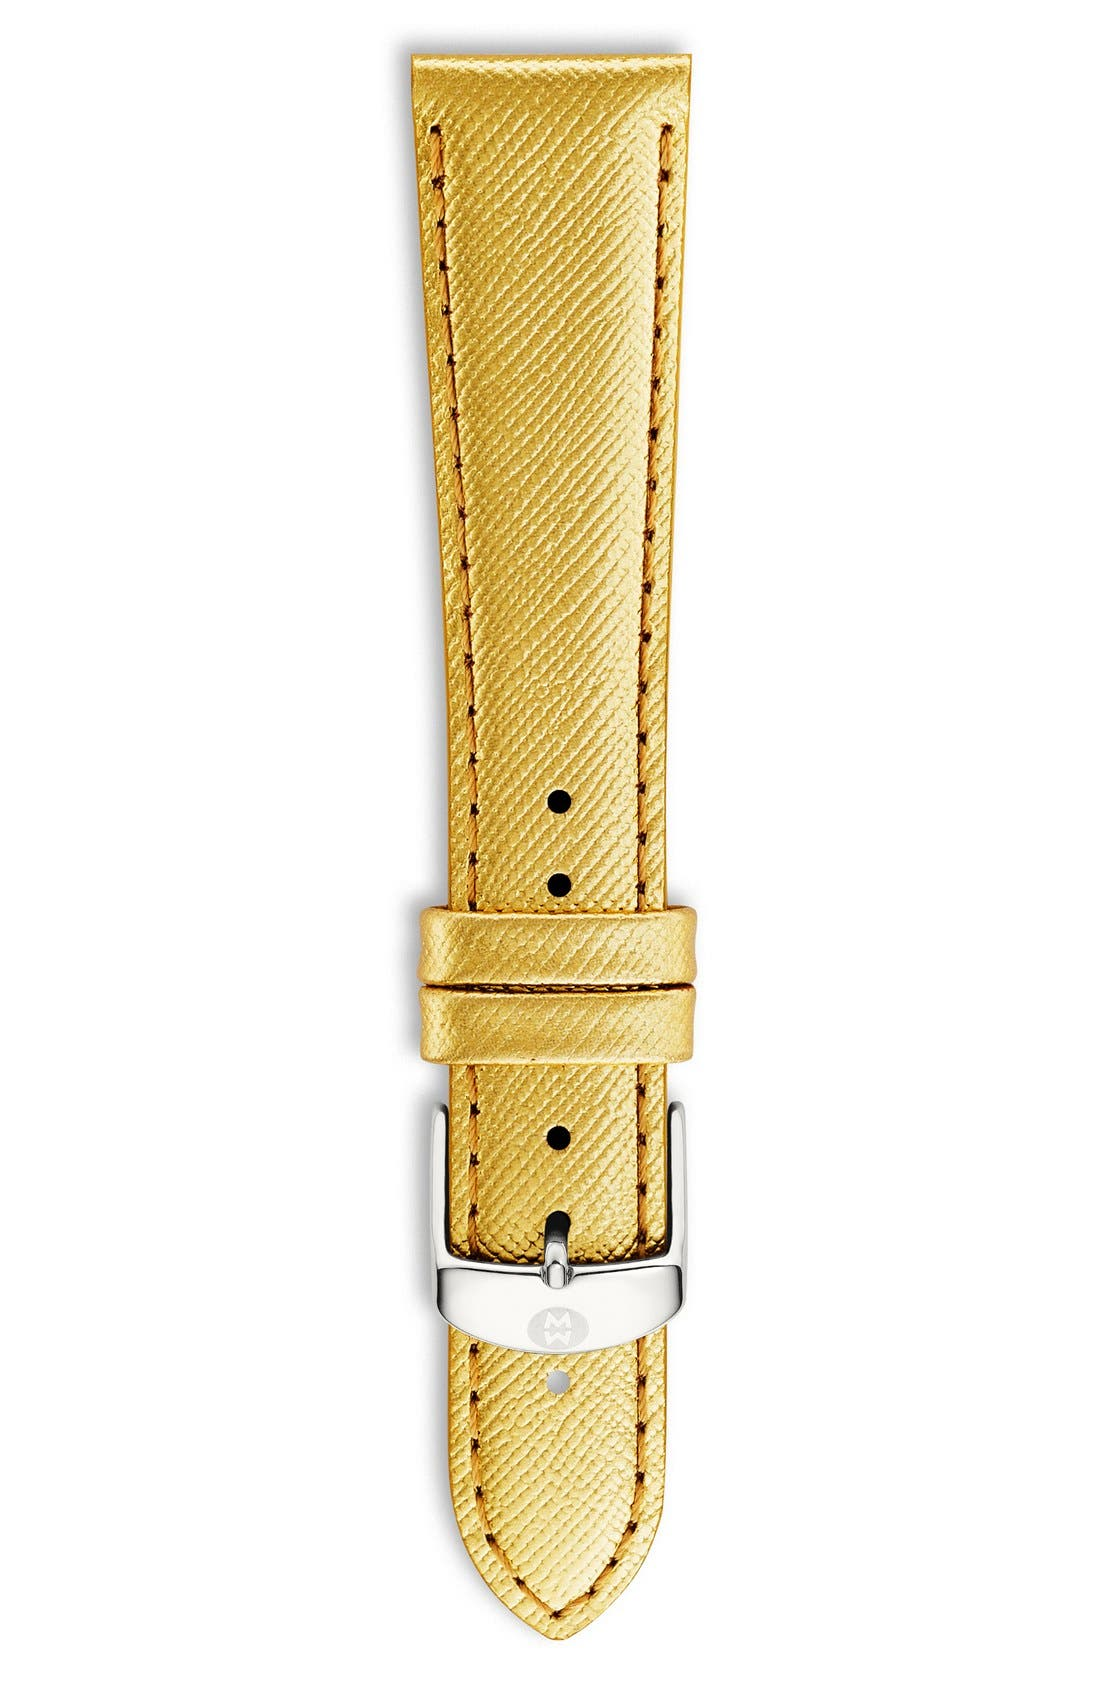 Alternate Image 1 Selected - MICHELE 18mm Metallic Leather Watch Strap